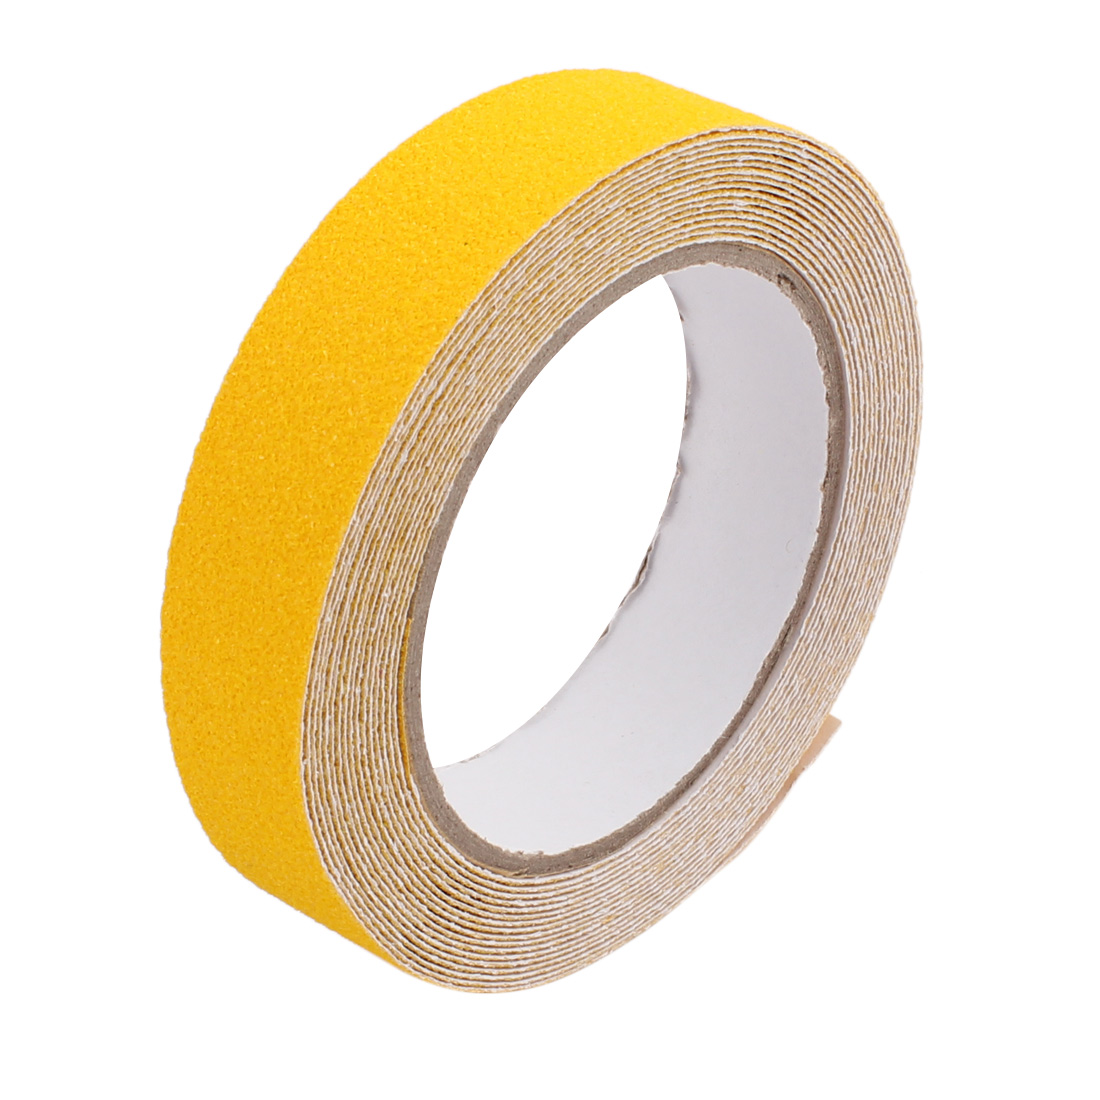 Yellow Anti-Slip Grip Tape Safety High Traction Indoor Outdoor 25mmx5m